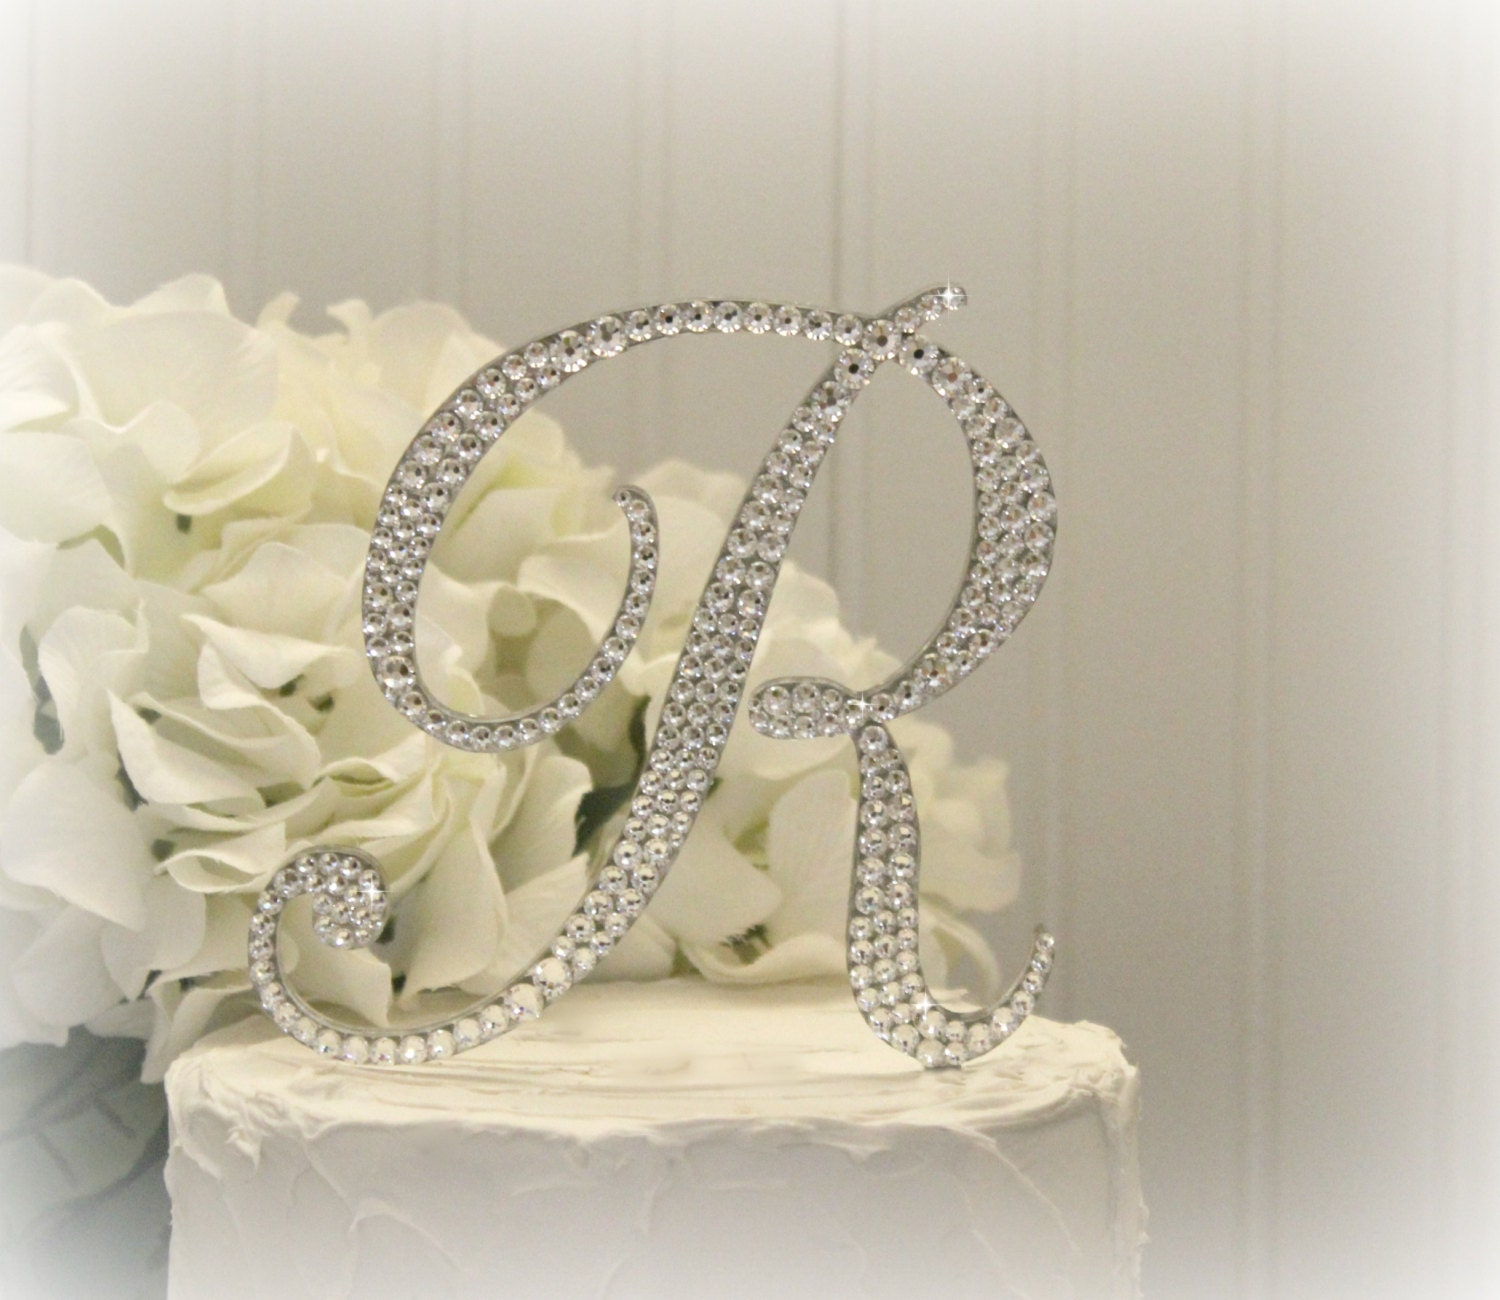 wedding cake toppers letters wedding cake topper monogram cake topper letter cake topper 26517